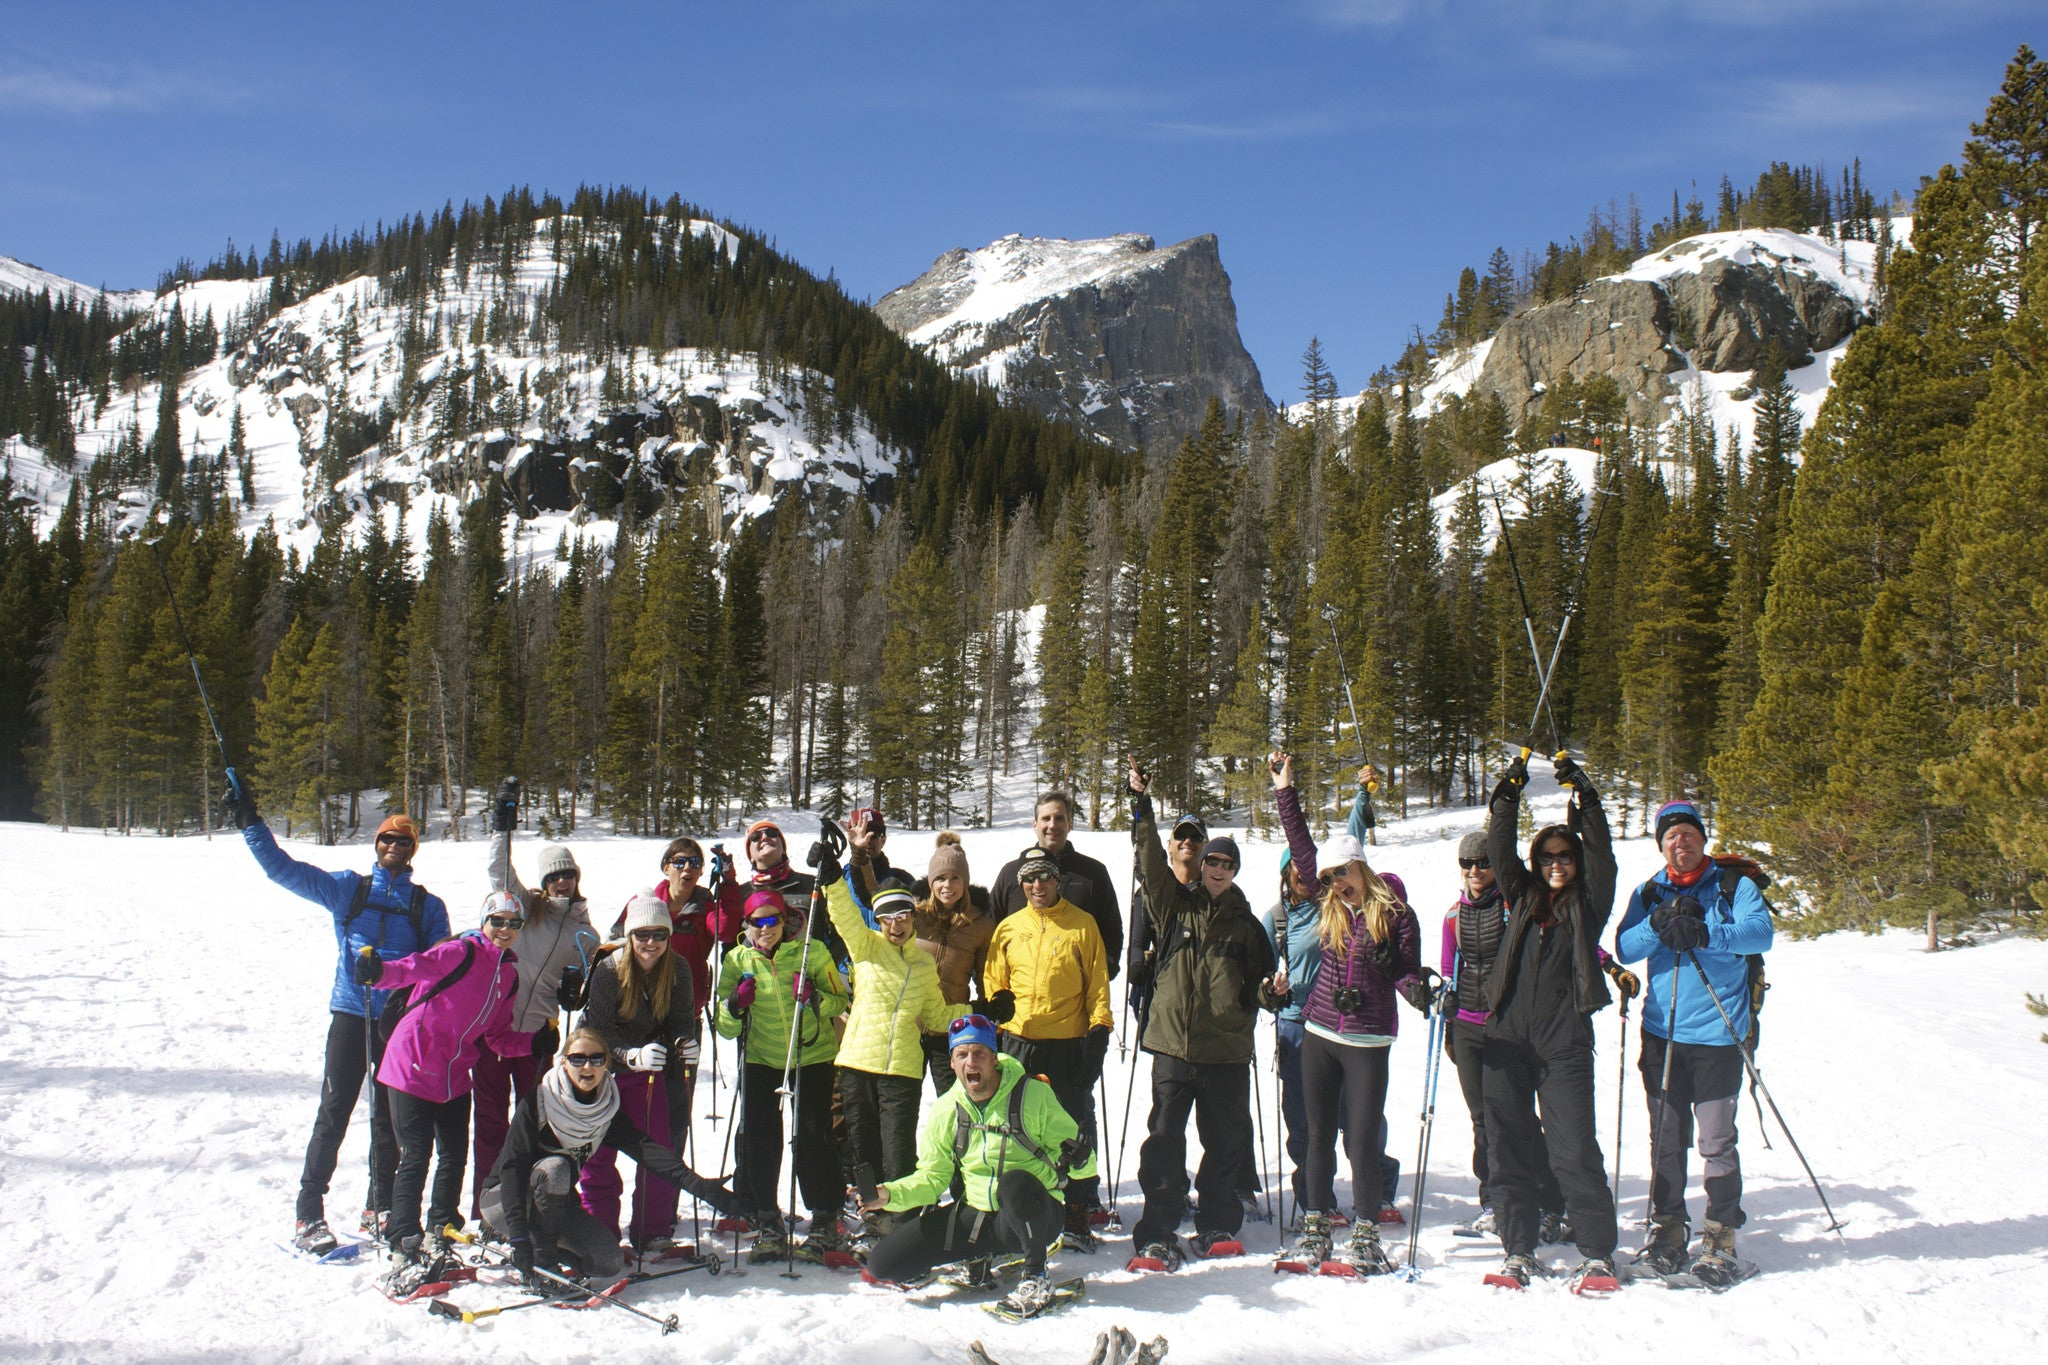 Snowshoeing in Estes Park with Melissa Arnot & Jeff Evans